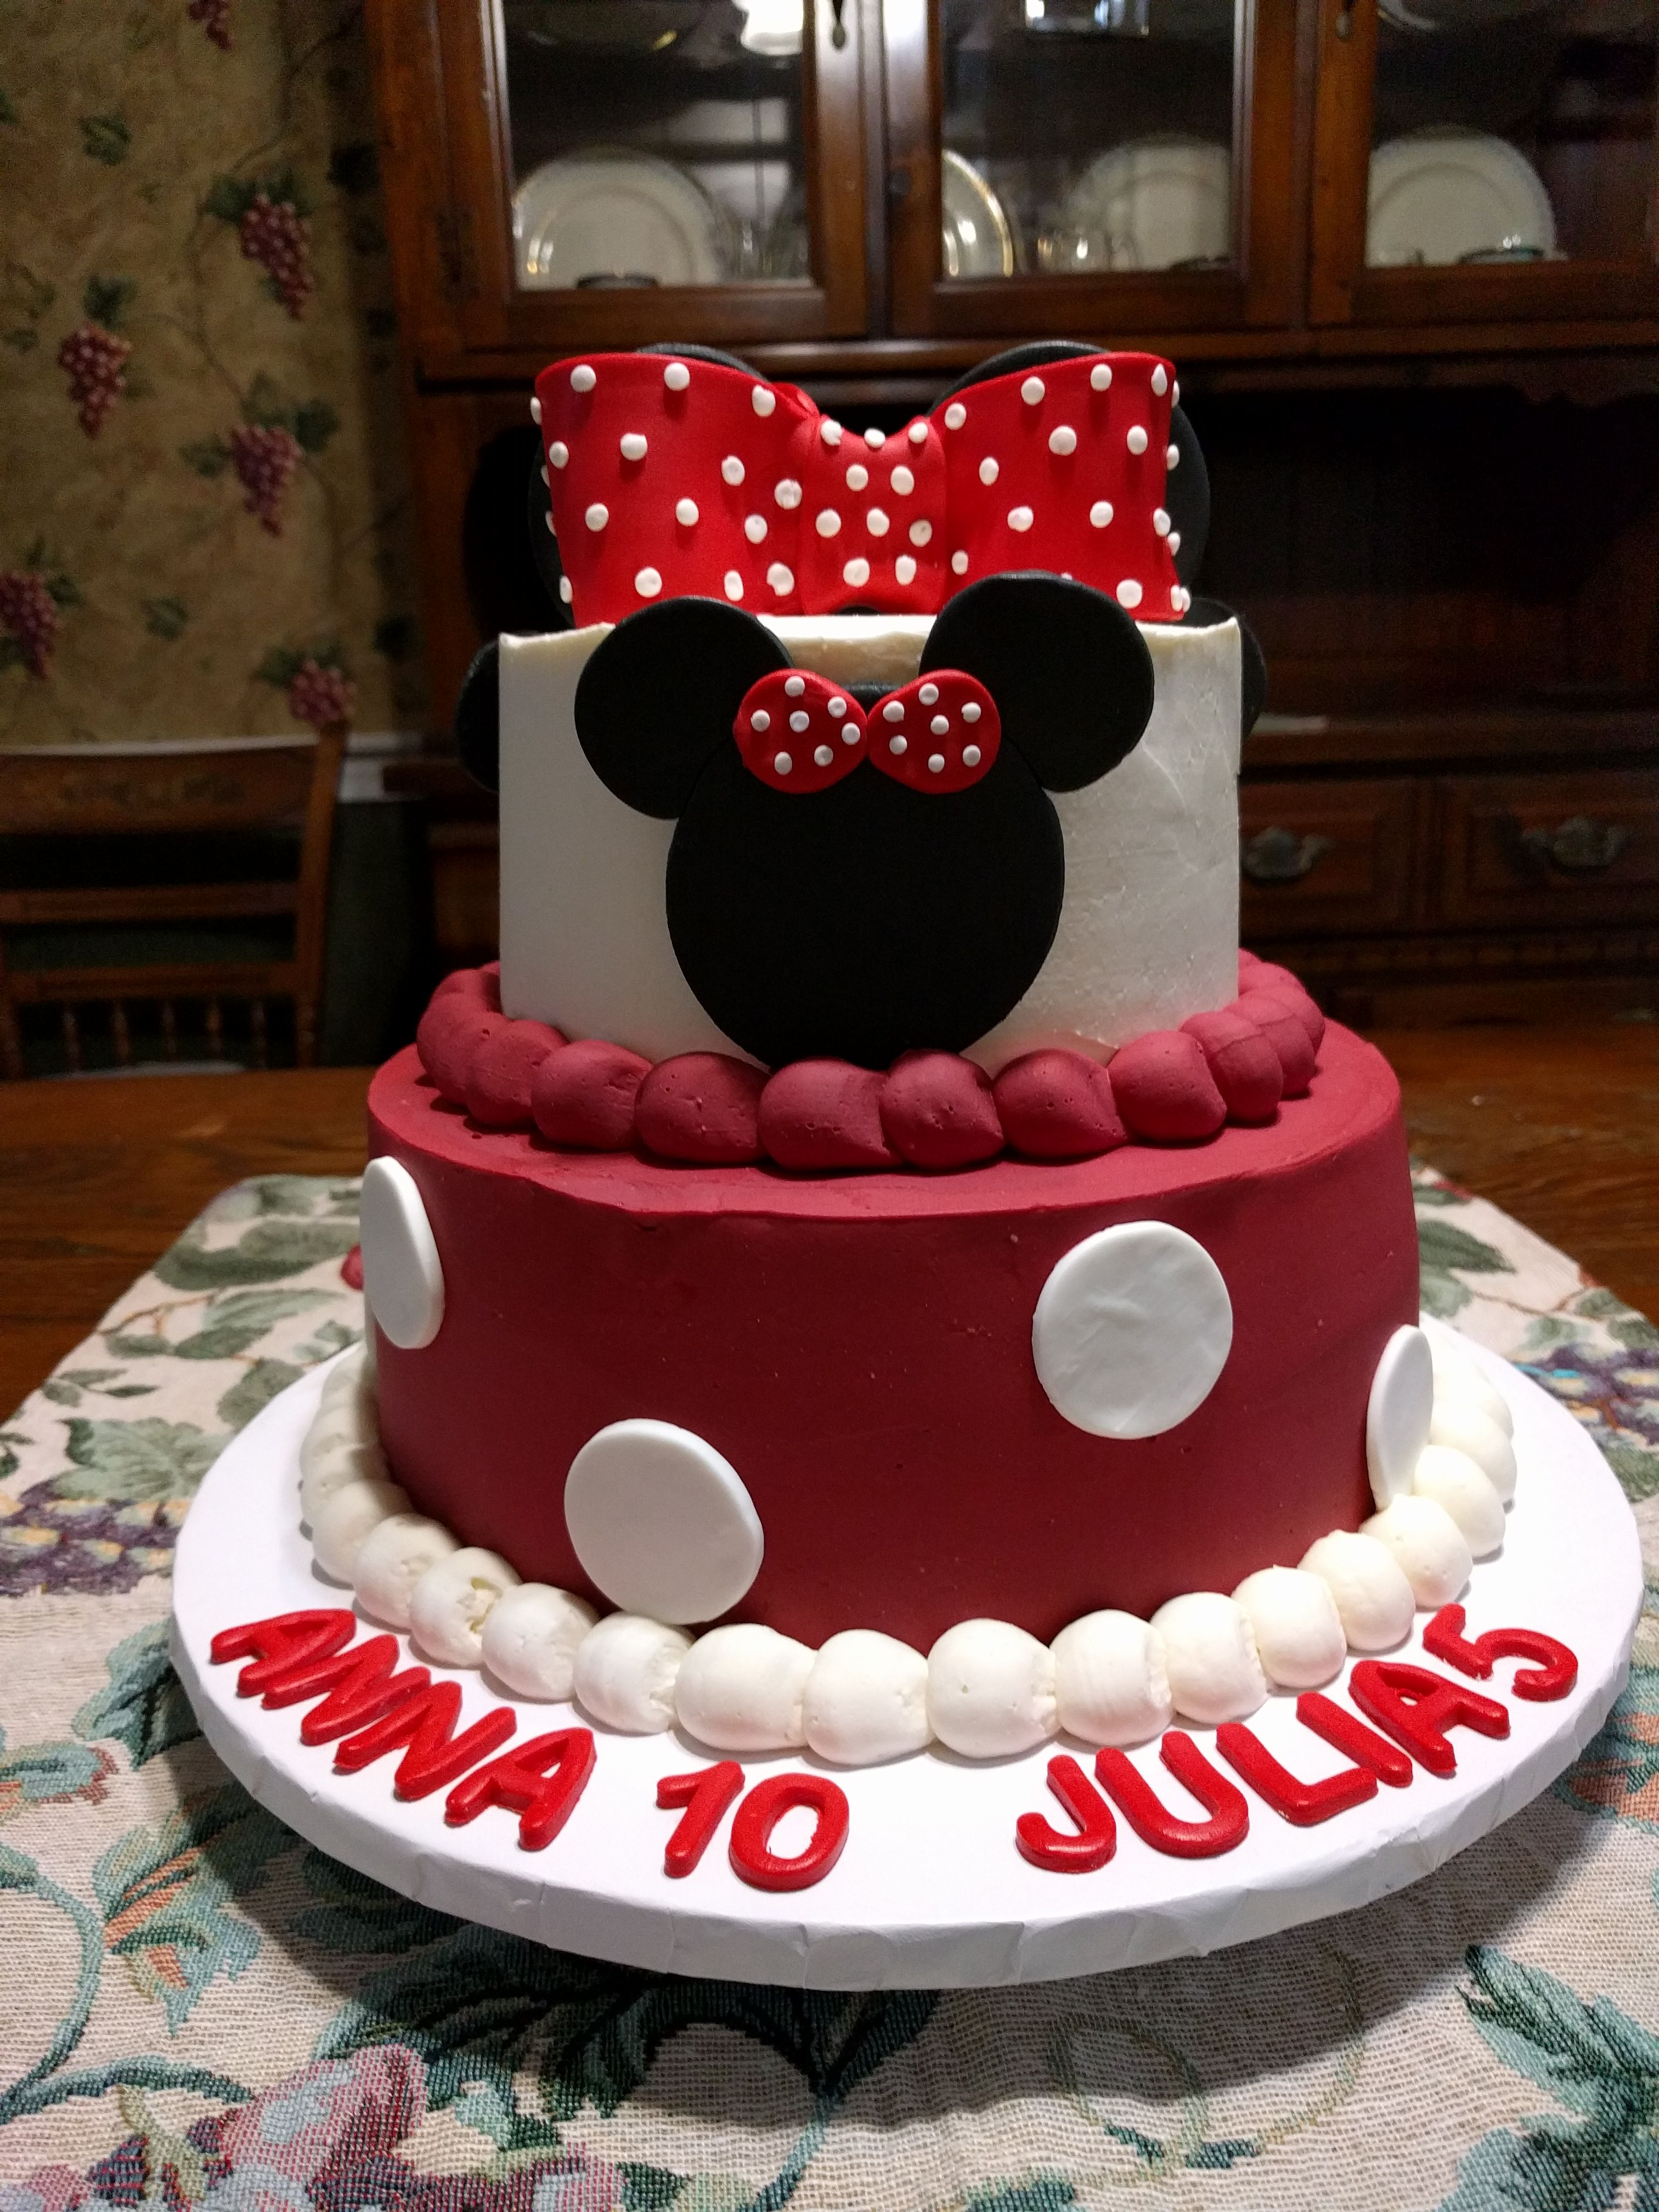 Tremendous Minnie Mouse Birthday Cake In Red Entire Cake Is Butter Cream Funny Birthday Cards Online Overcheapnameinfo